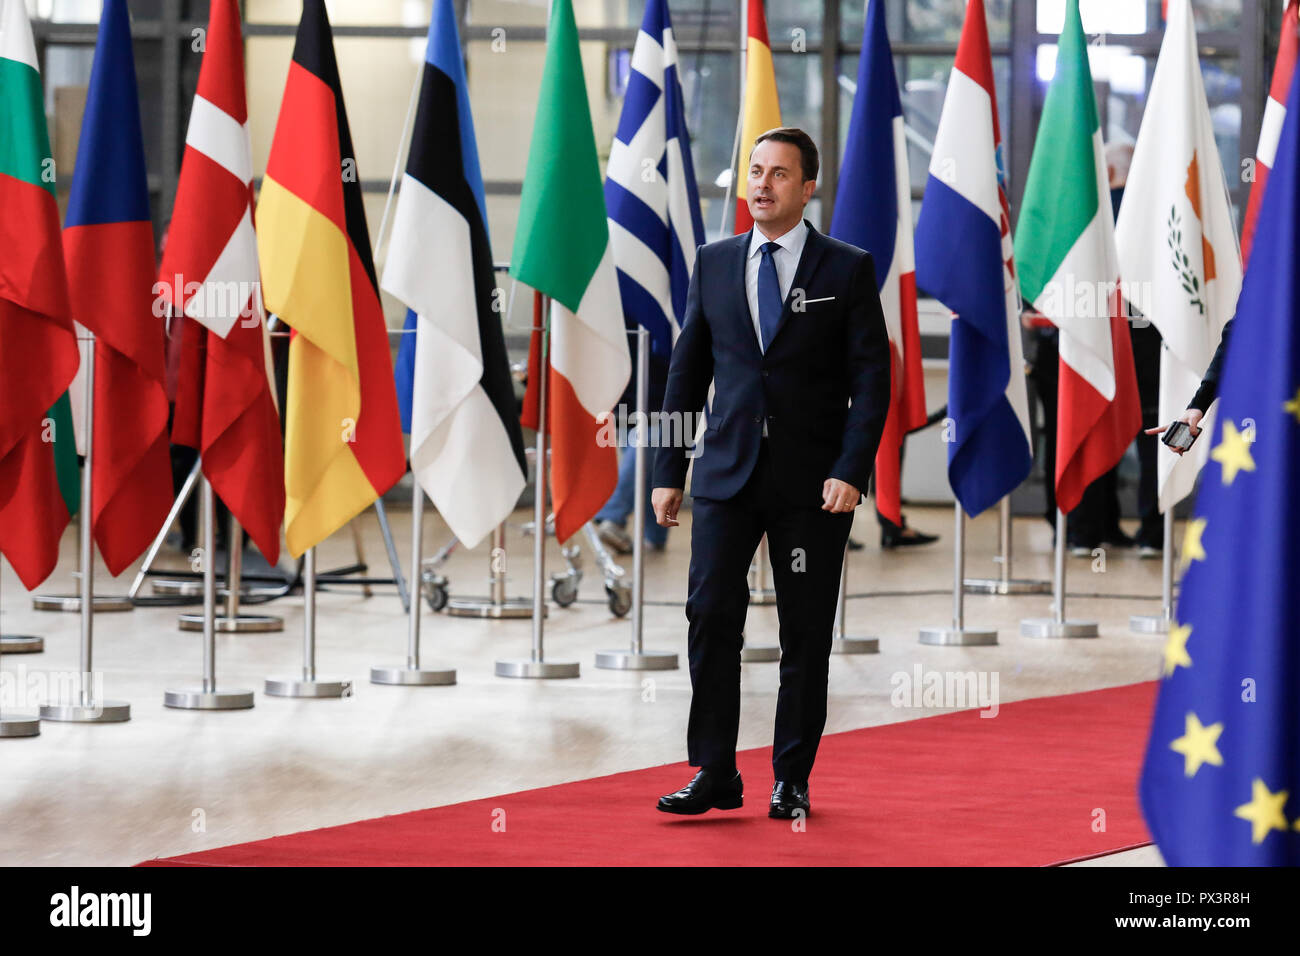 Brussels, Belgium. 18th Oct 2018. Xavier Bettel, Prime Minister of  Luxemburg arrives for European Council meeting in Brussels, Belgium on October 18, 2018. The summit concentrates on migration and security policies. Credit: Michal Busko/Alamy Live News - Stock Image